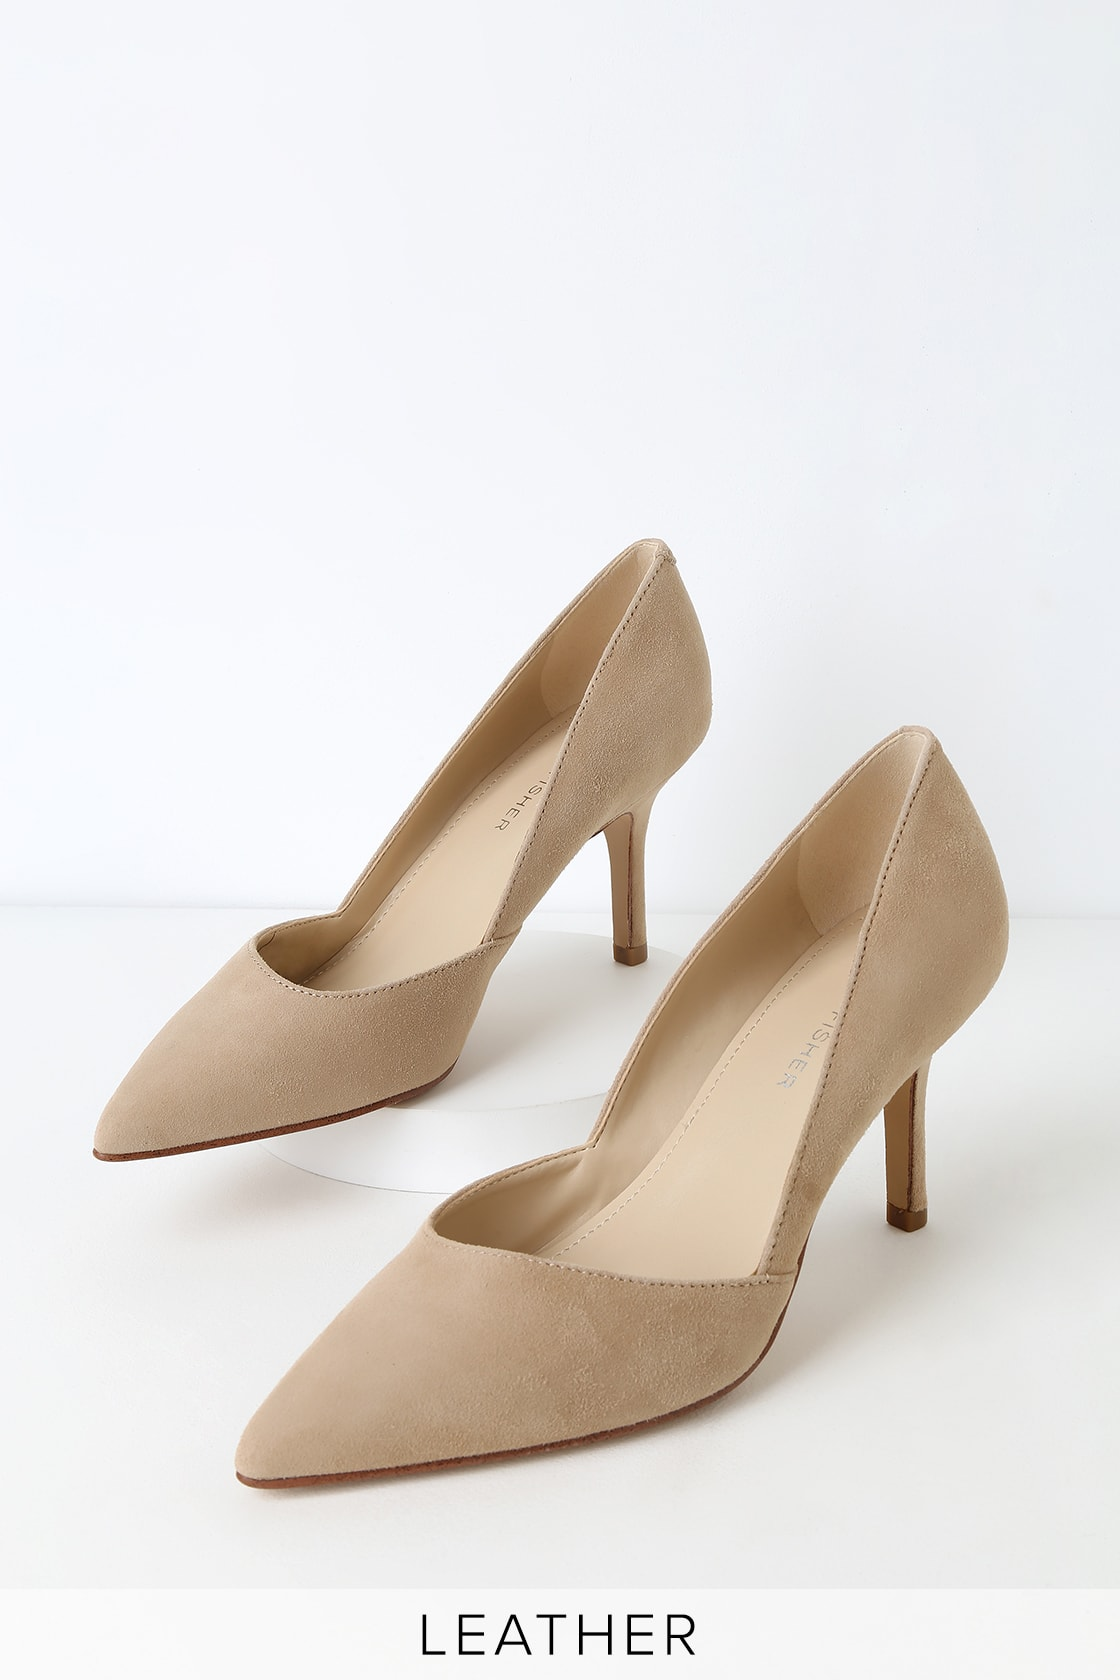 Tuscany Light Natural Suede Leather Pointed Toe Pumps by Marc Fisher